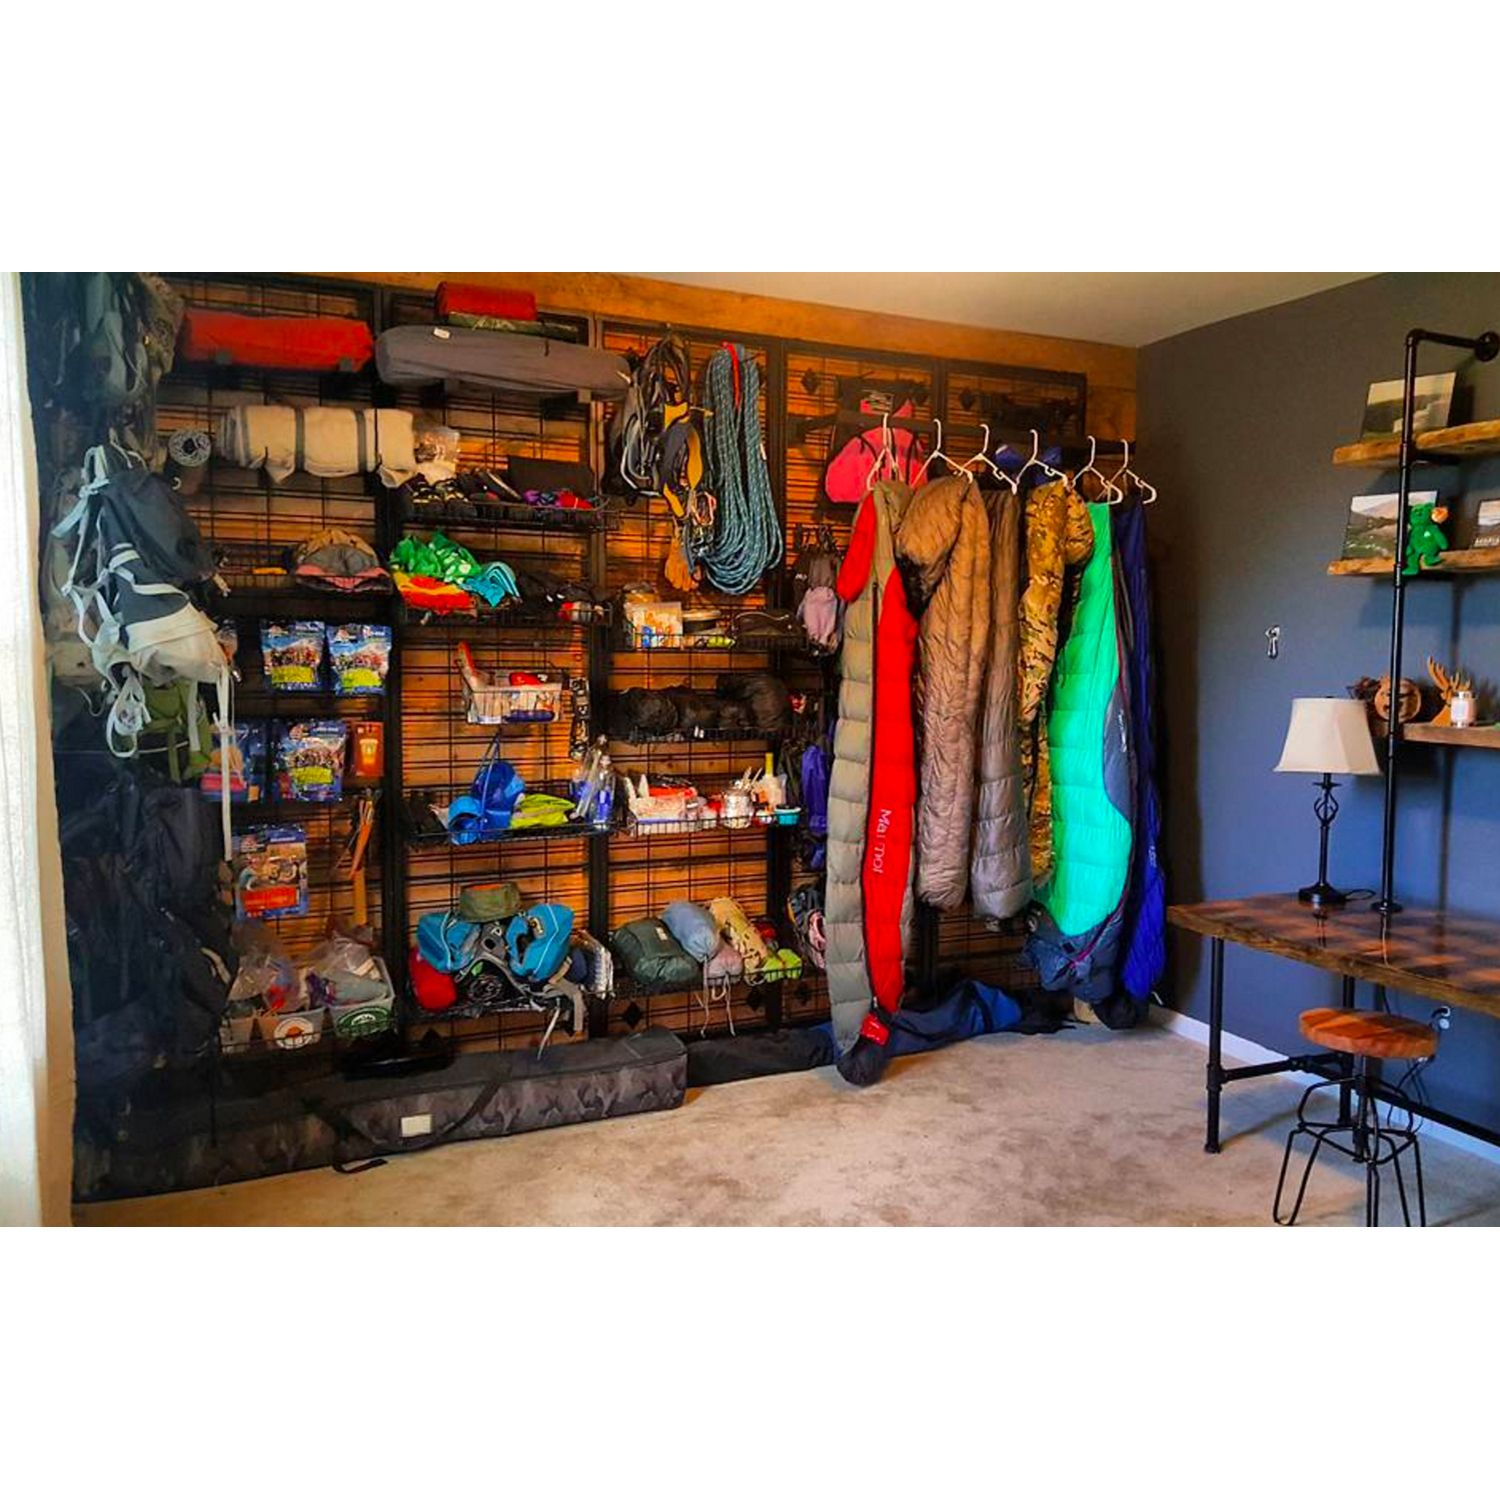 A Look Inside The Country S Raddest Gear Sheds Outdoor Gear Storage Camping Gear Storage Home